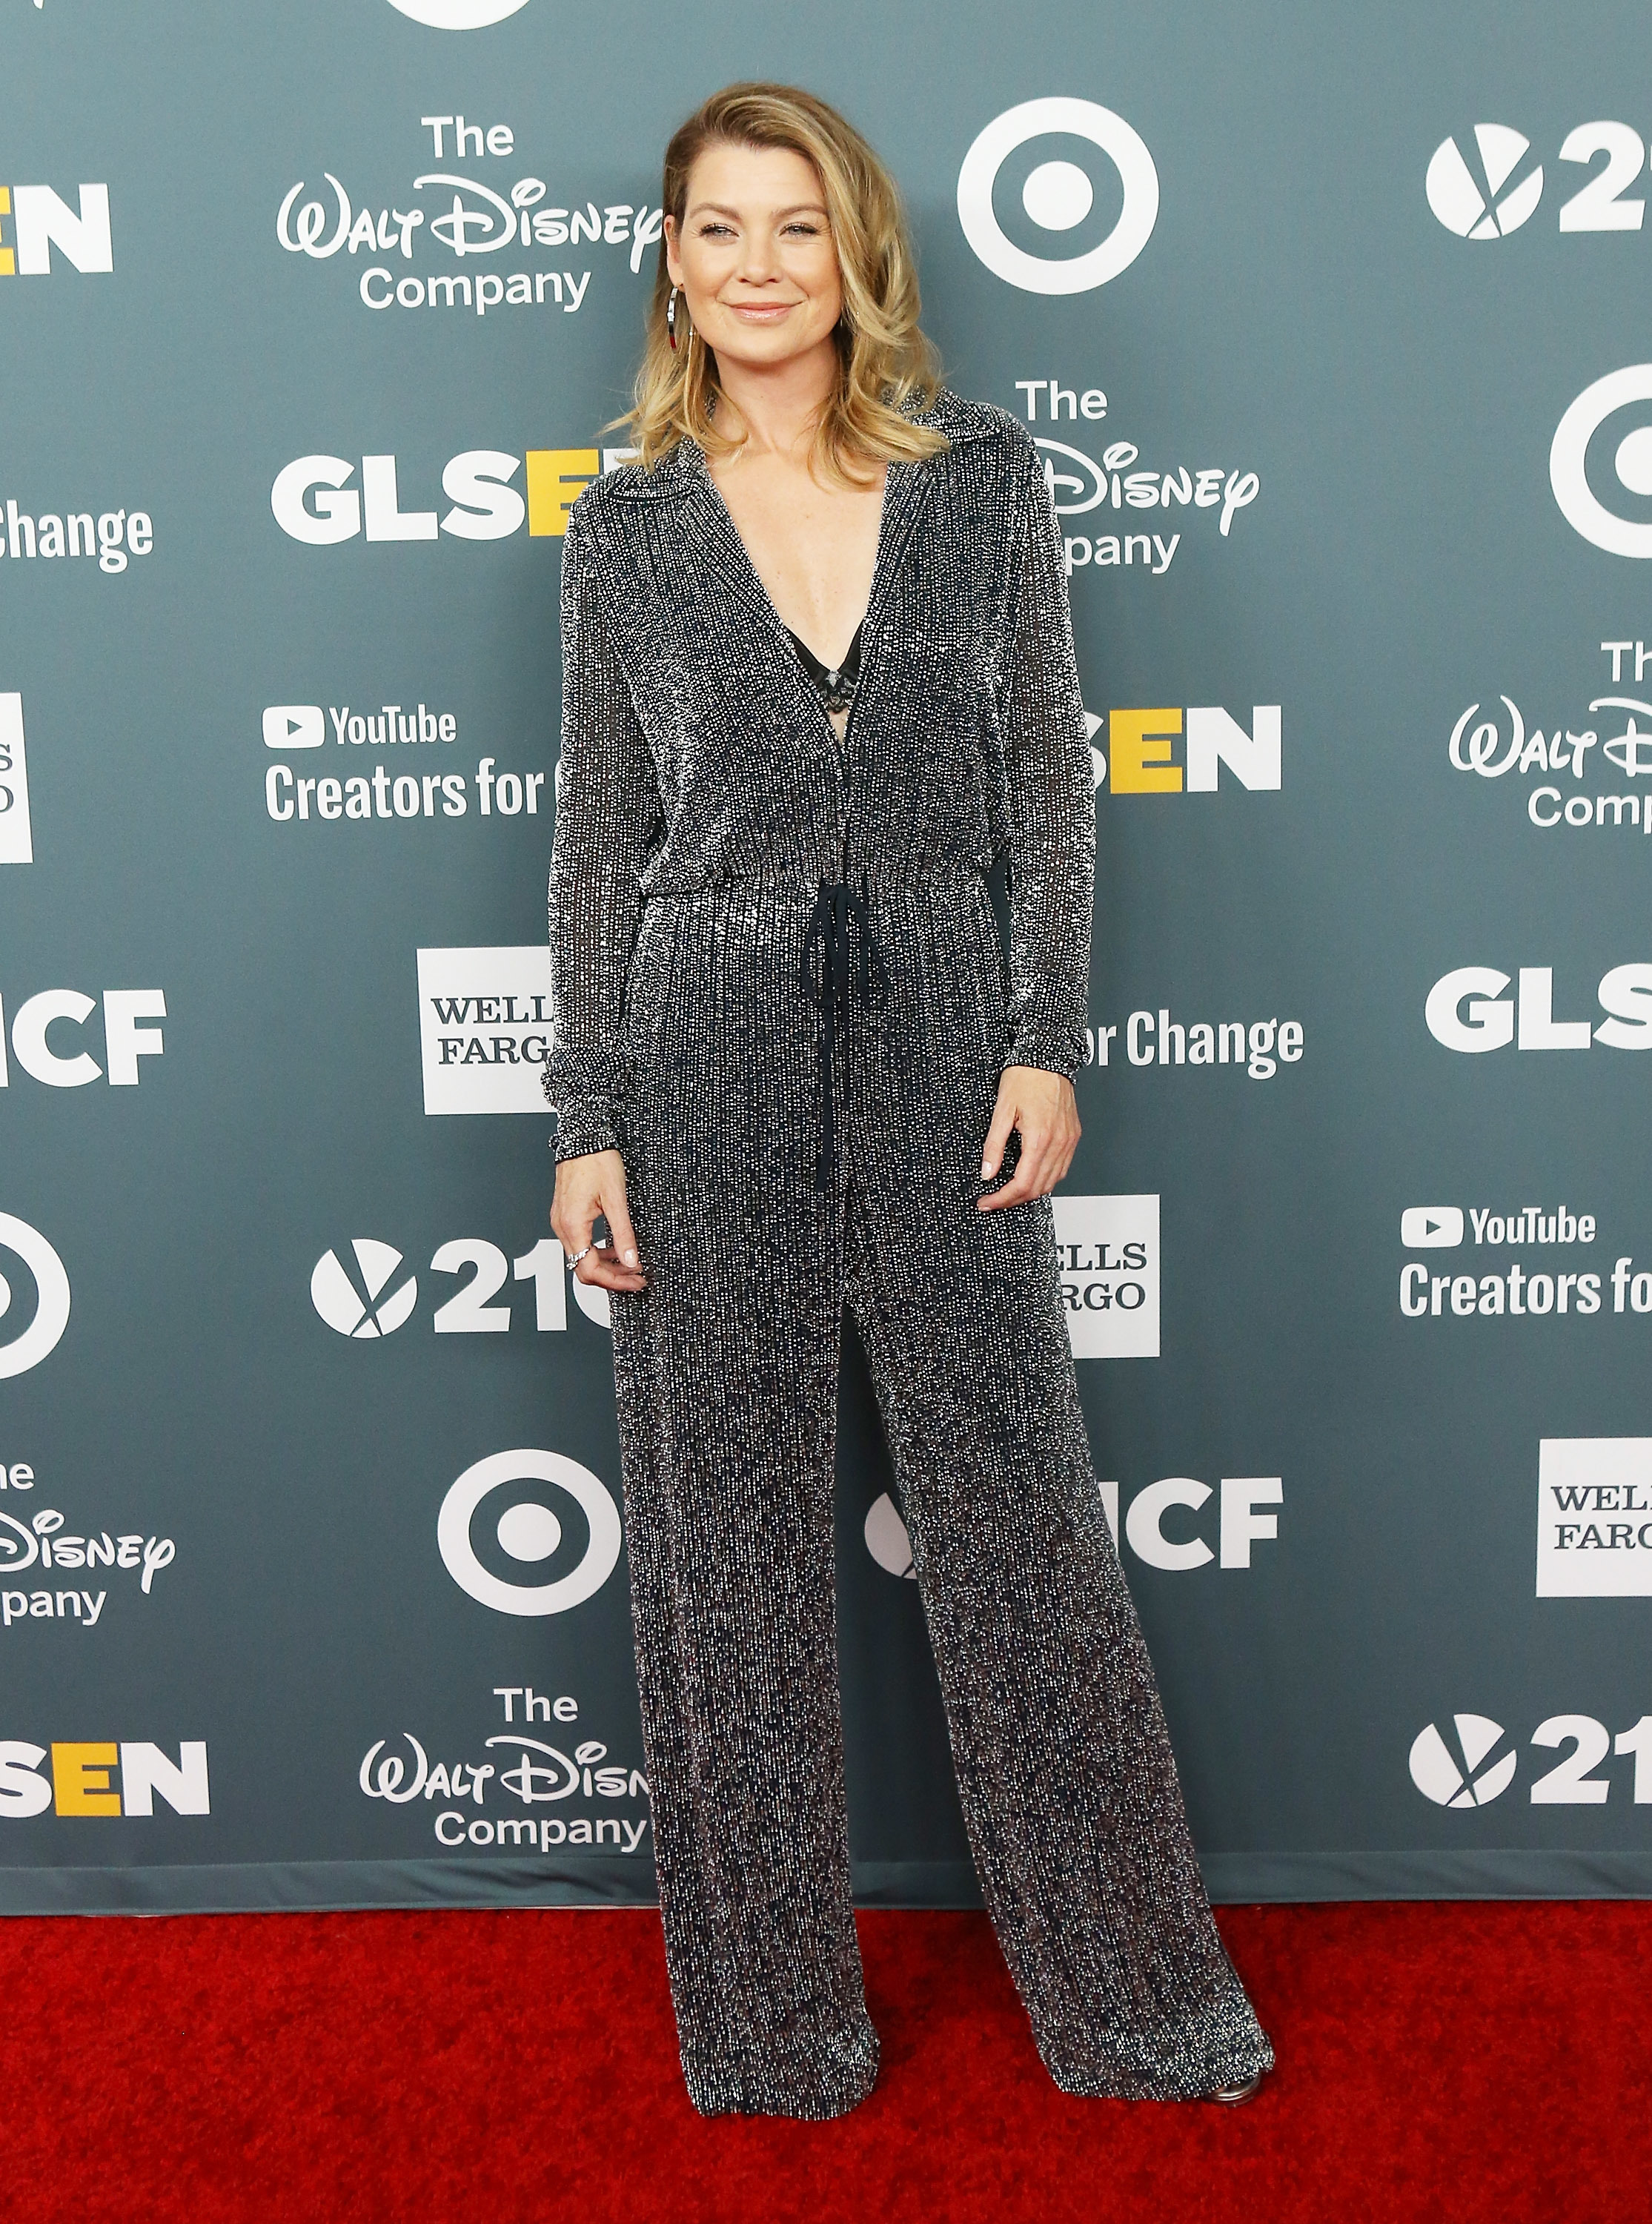 Ellen Pompeo attends the GLSEN Respect Awards held at the Beverly Wilshire Four Seasons Hotel in Beverly Hills, California on Oct. 19, 2018.